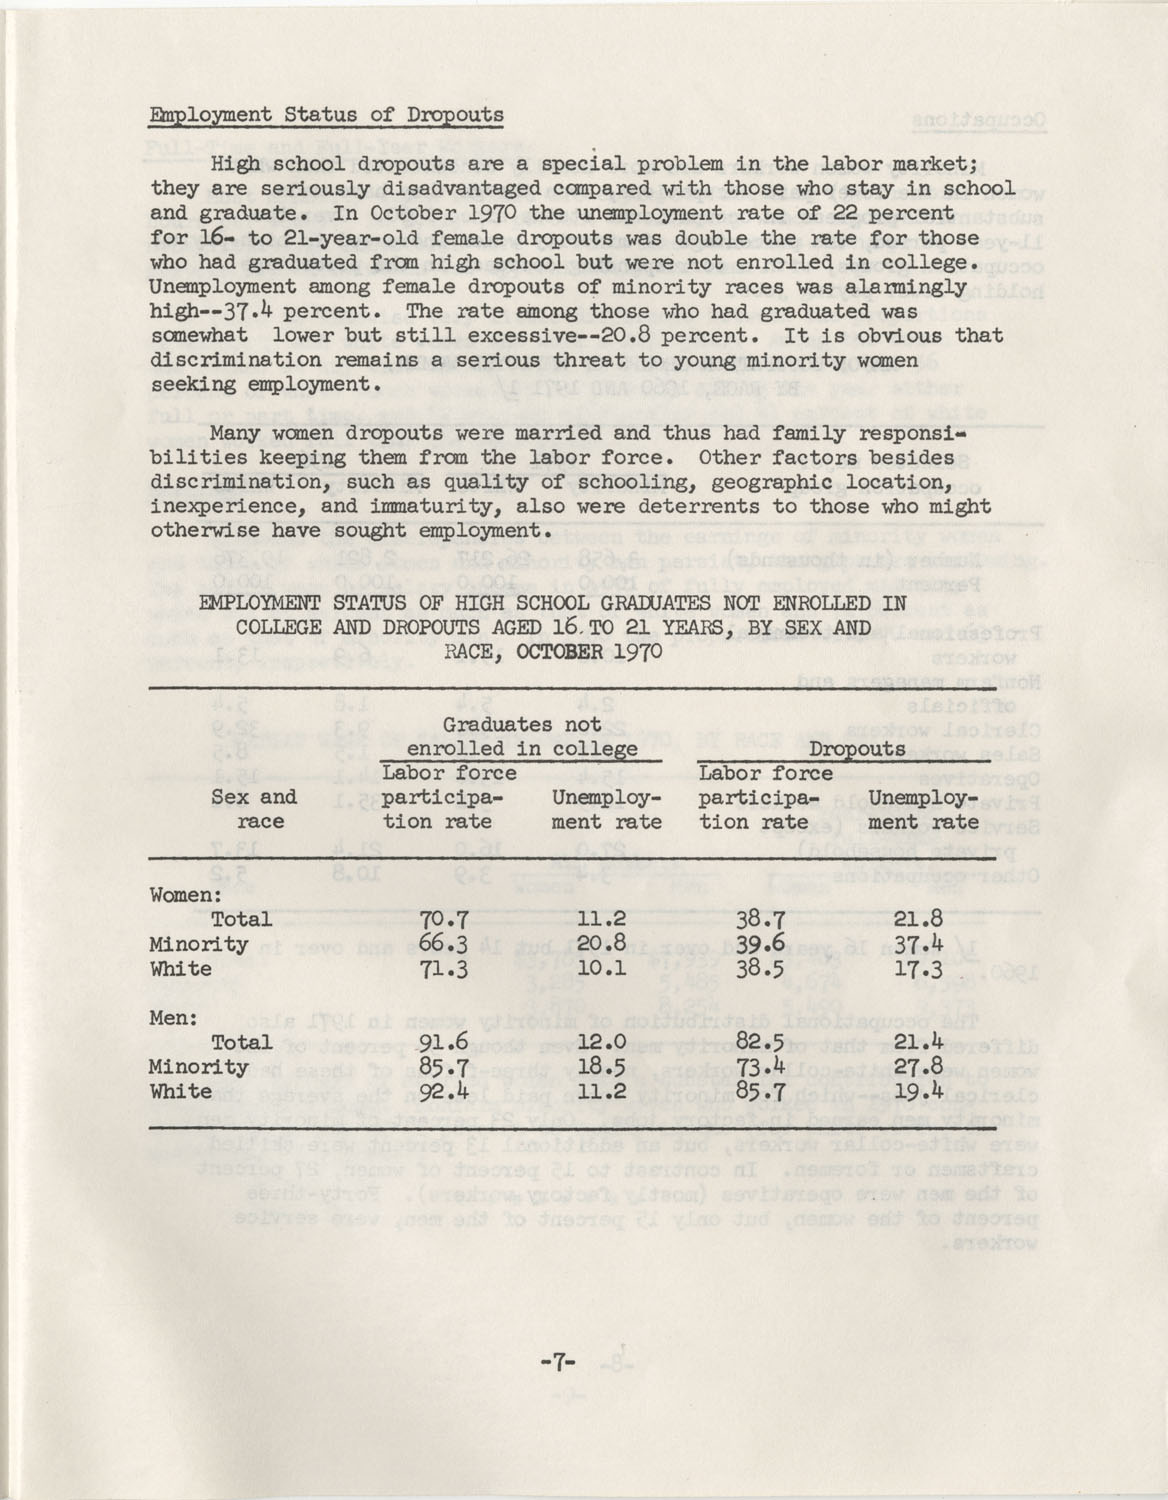 Facts on Women Workers of Minority Races, U.S. Department of Labor, June 1972, Page 7